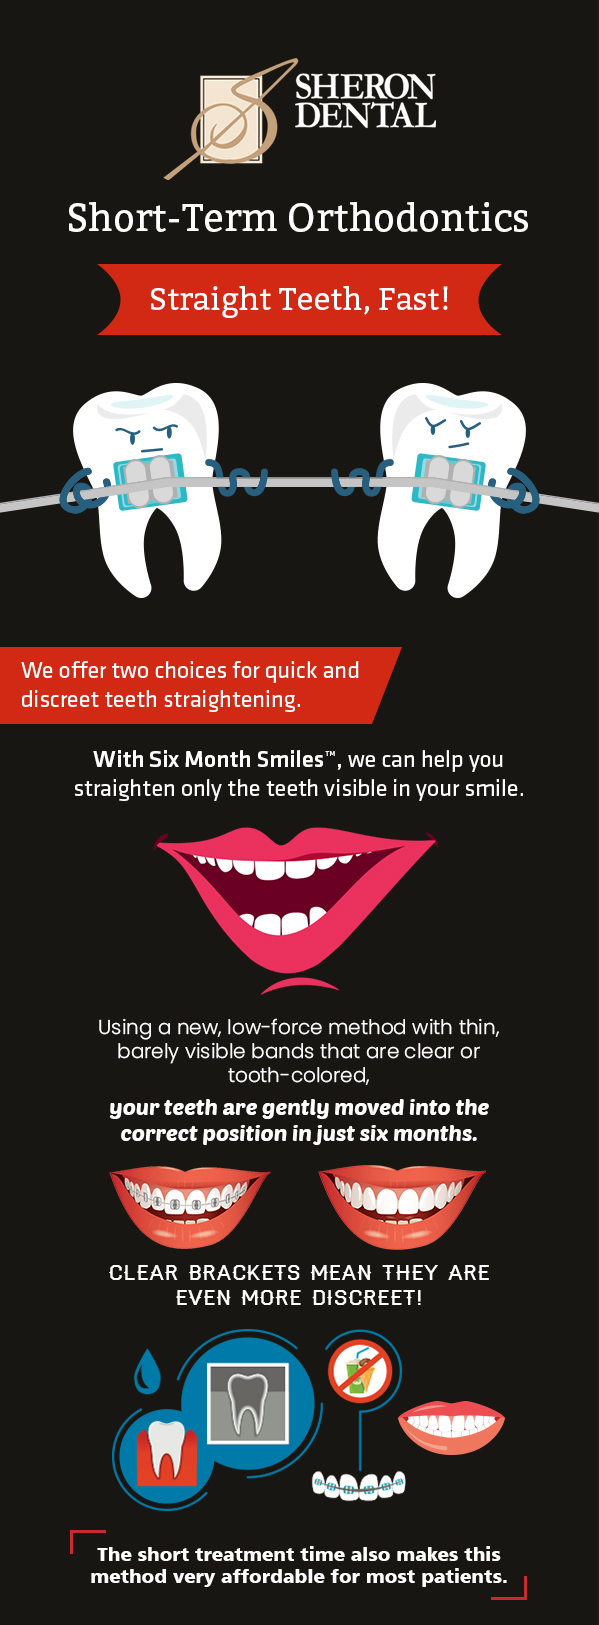 Choose Sheron Dental for Short-Term Orthodontic Treatment in Vancouver, WA